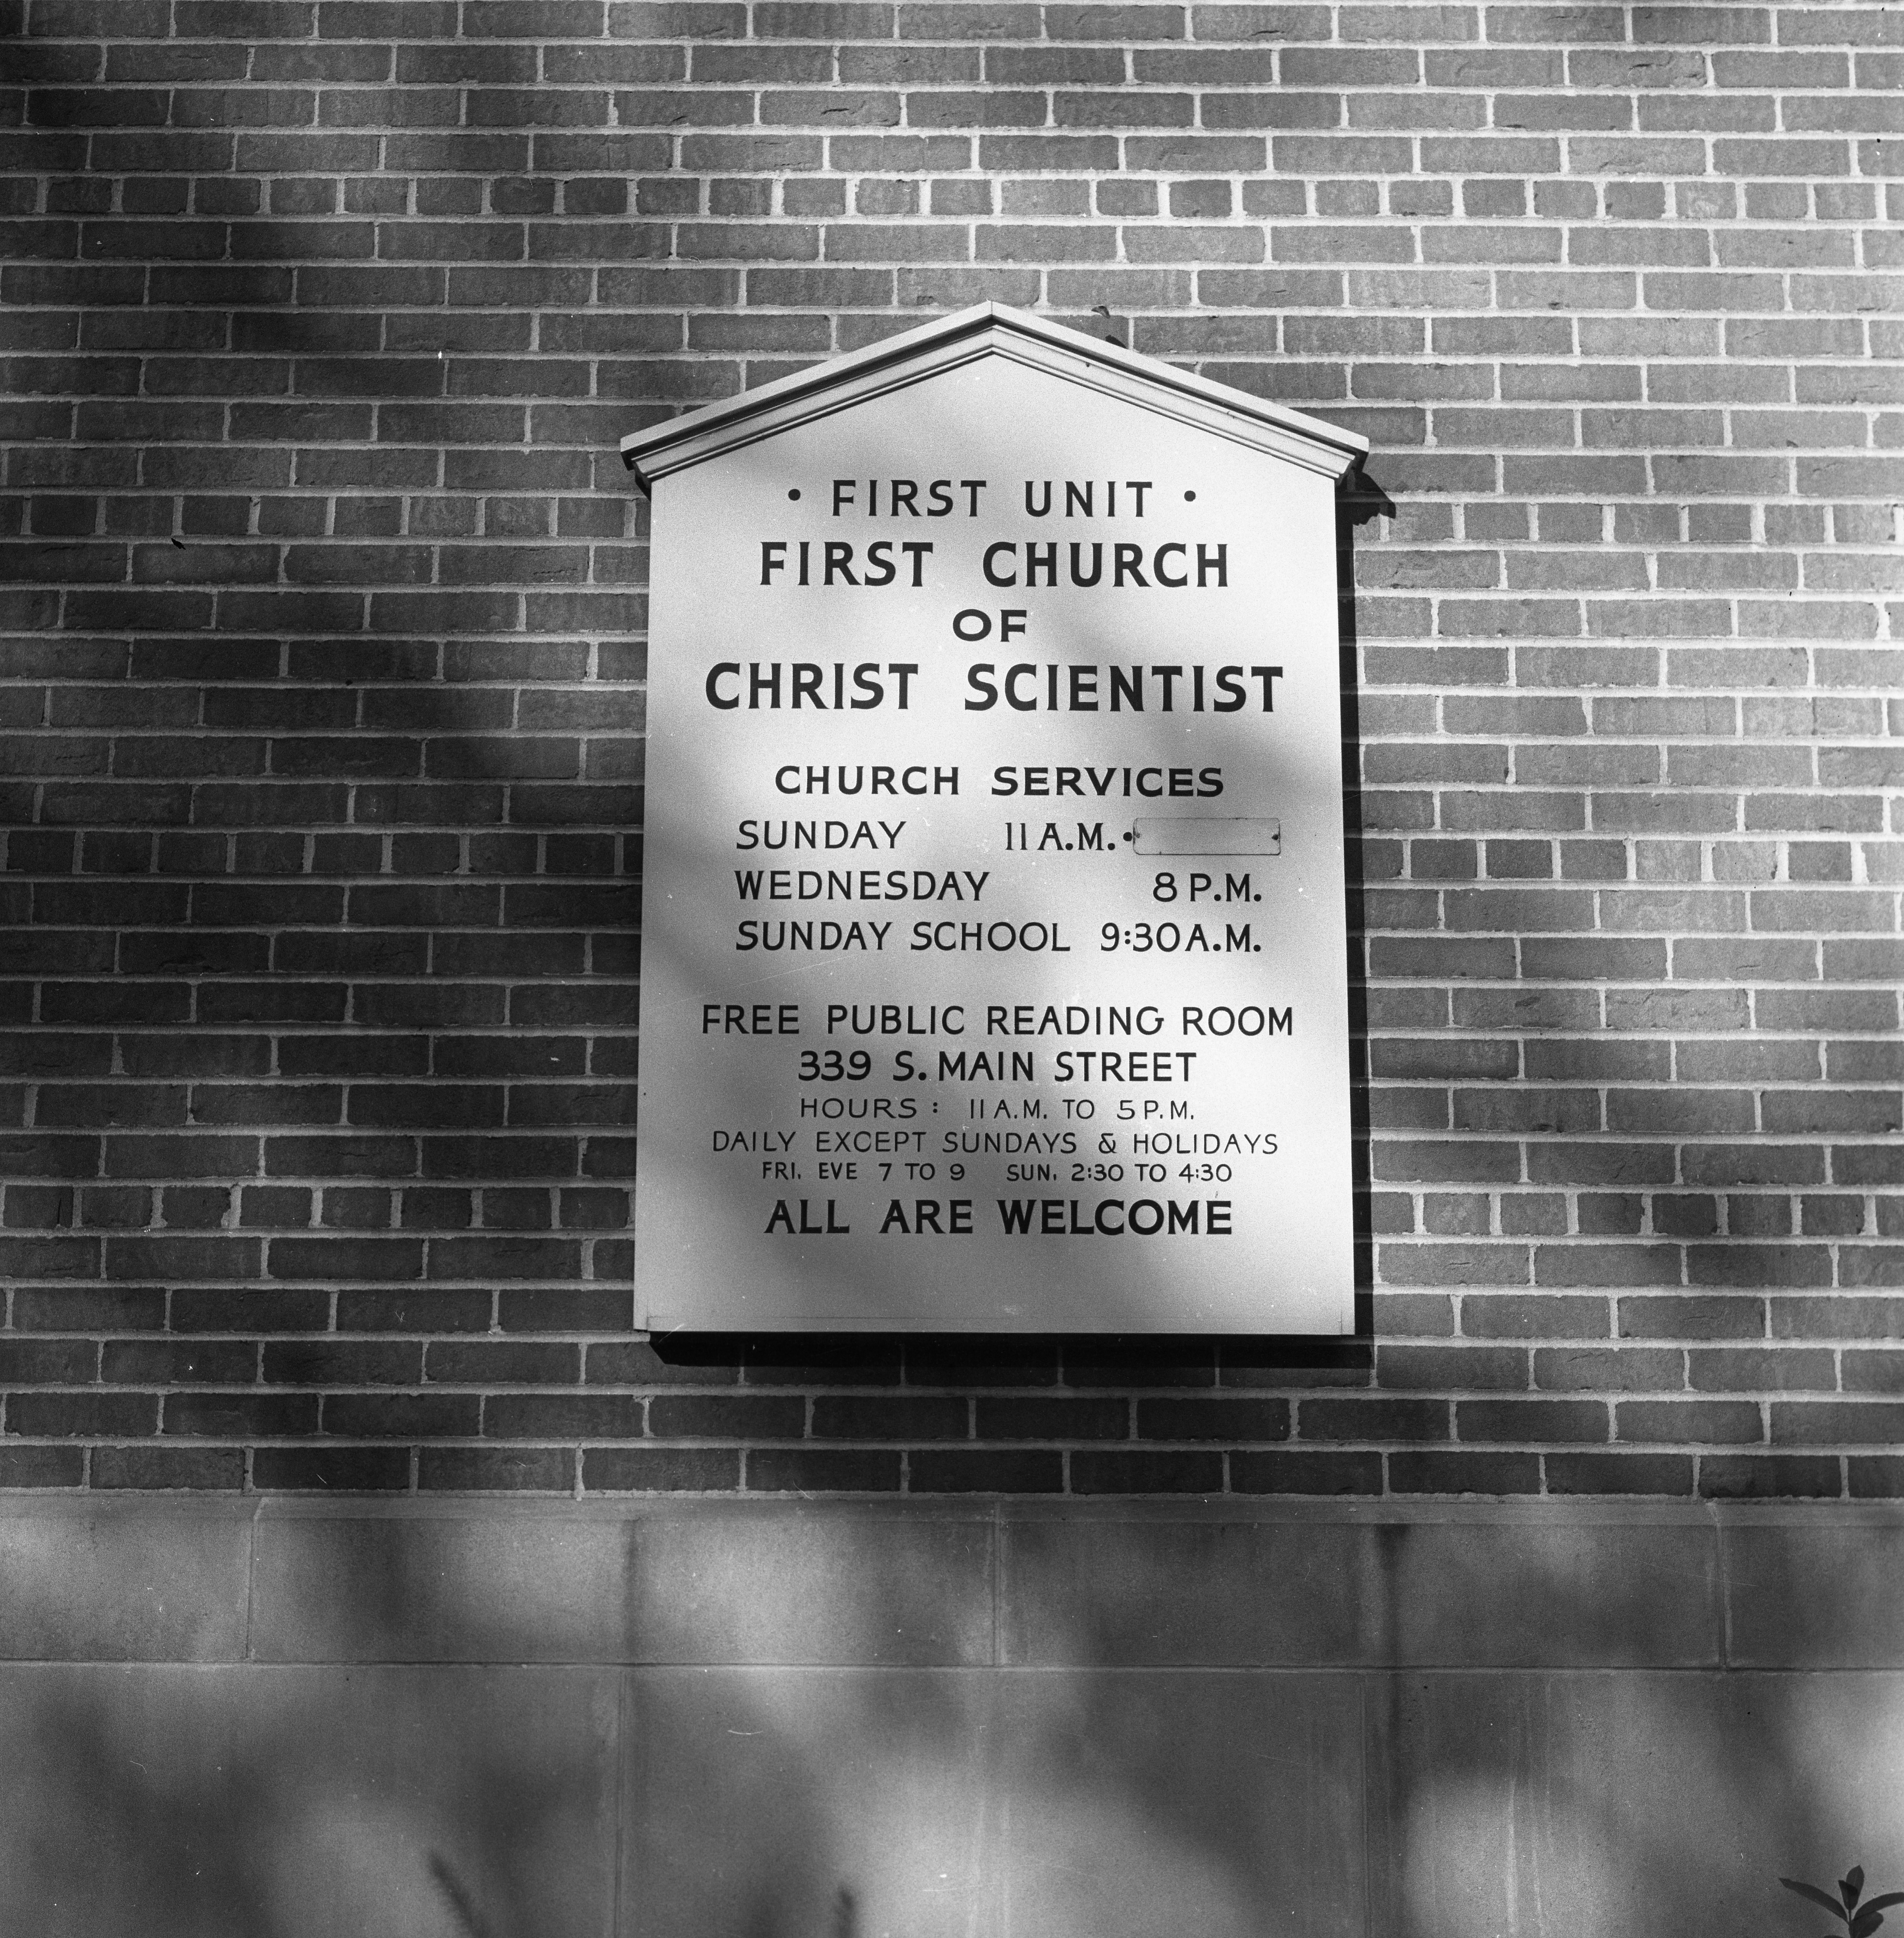 First Church of Christ Scientist Sign, September 1955 image